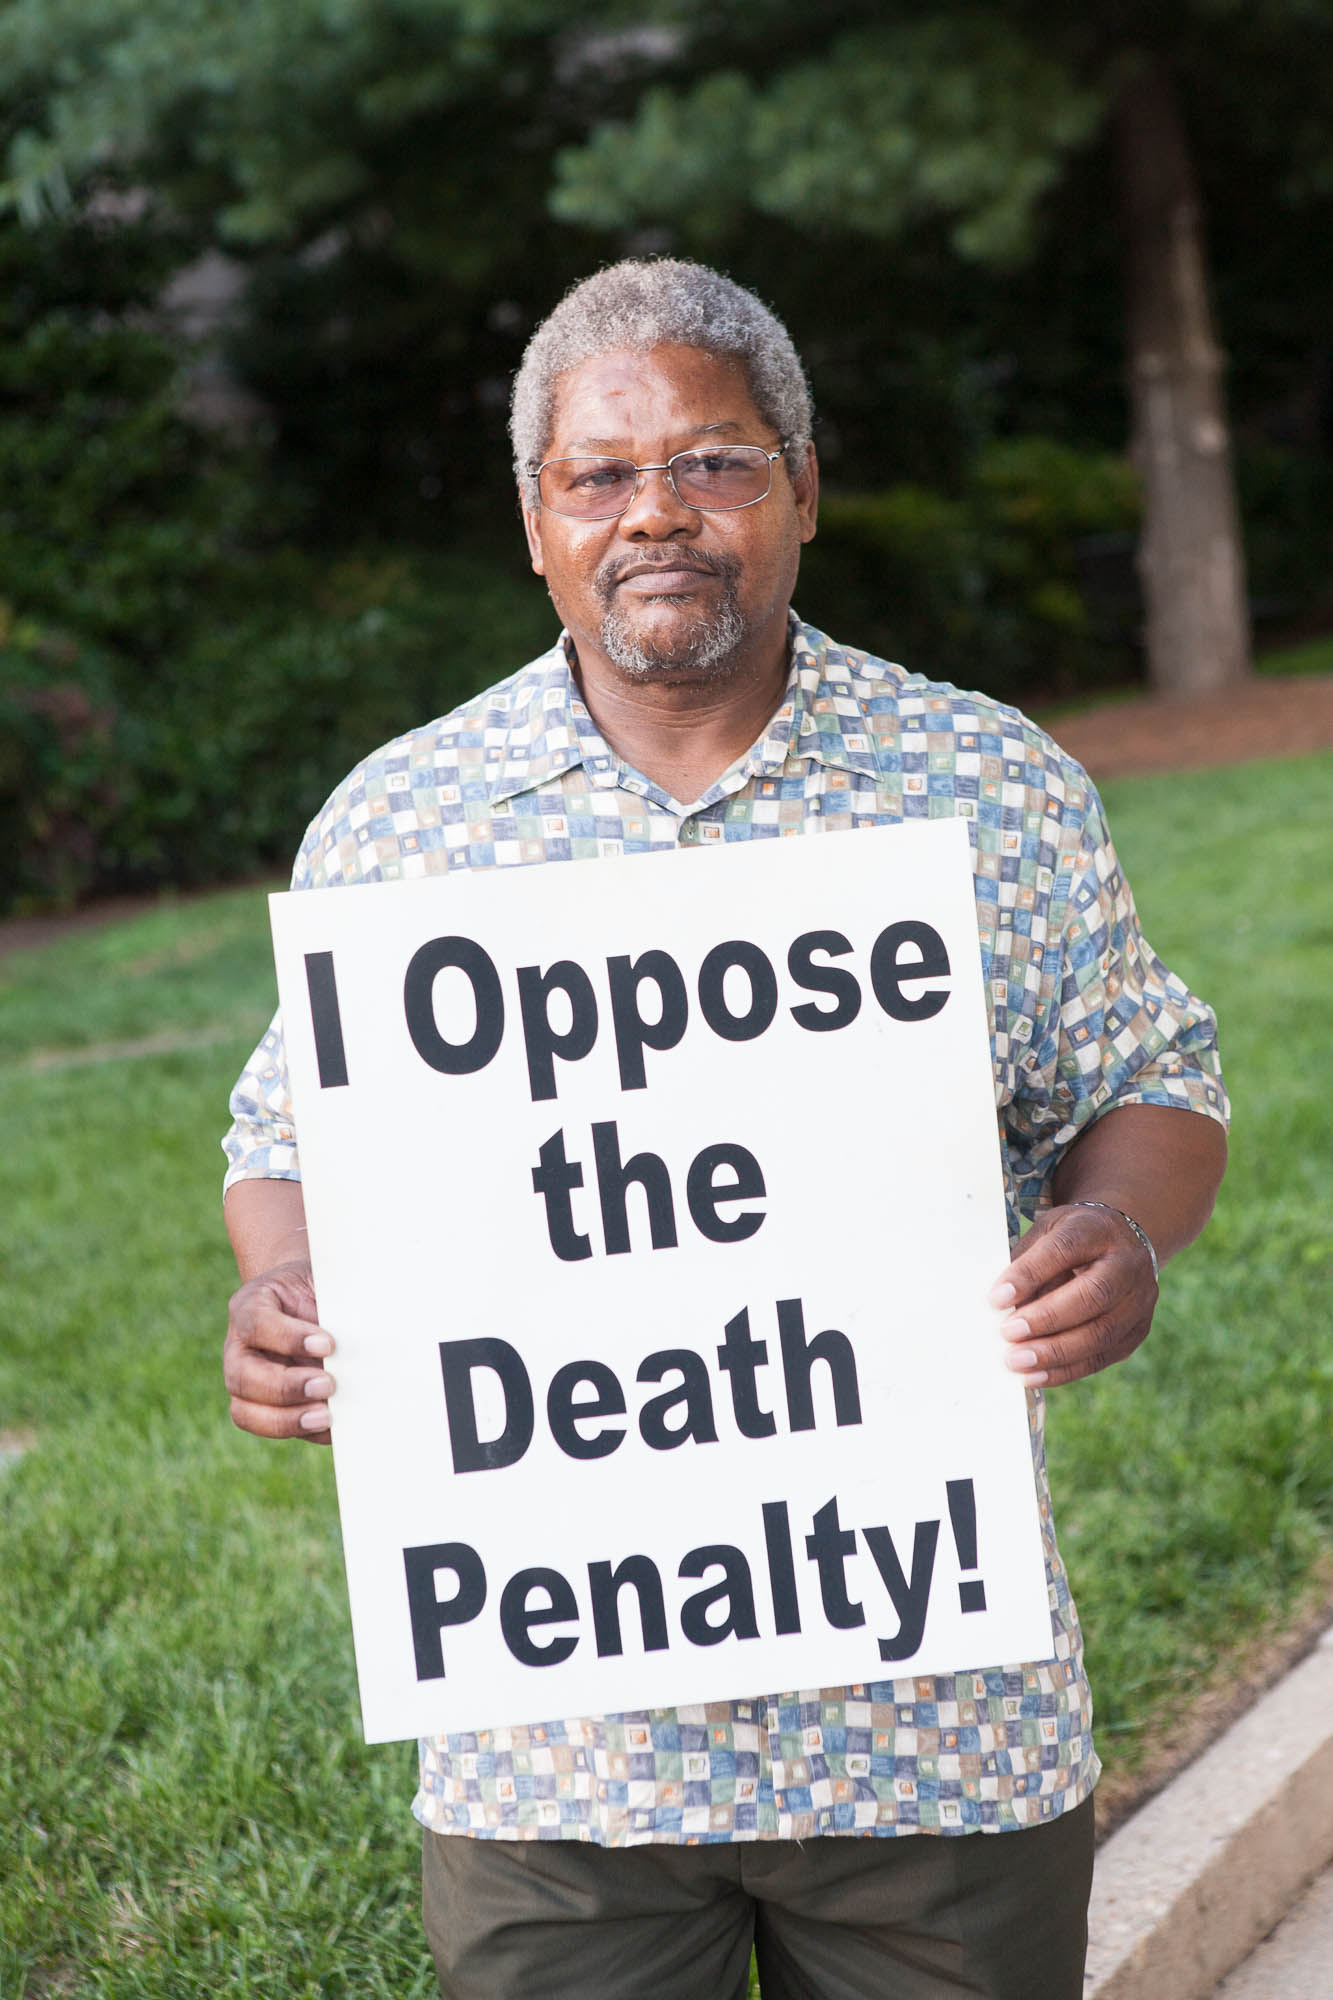 Shabaka WaQlimi (Joseph Brown) - Florida - death row innocent, wrongful conviction, exonerated